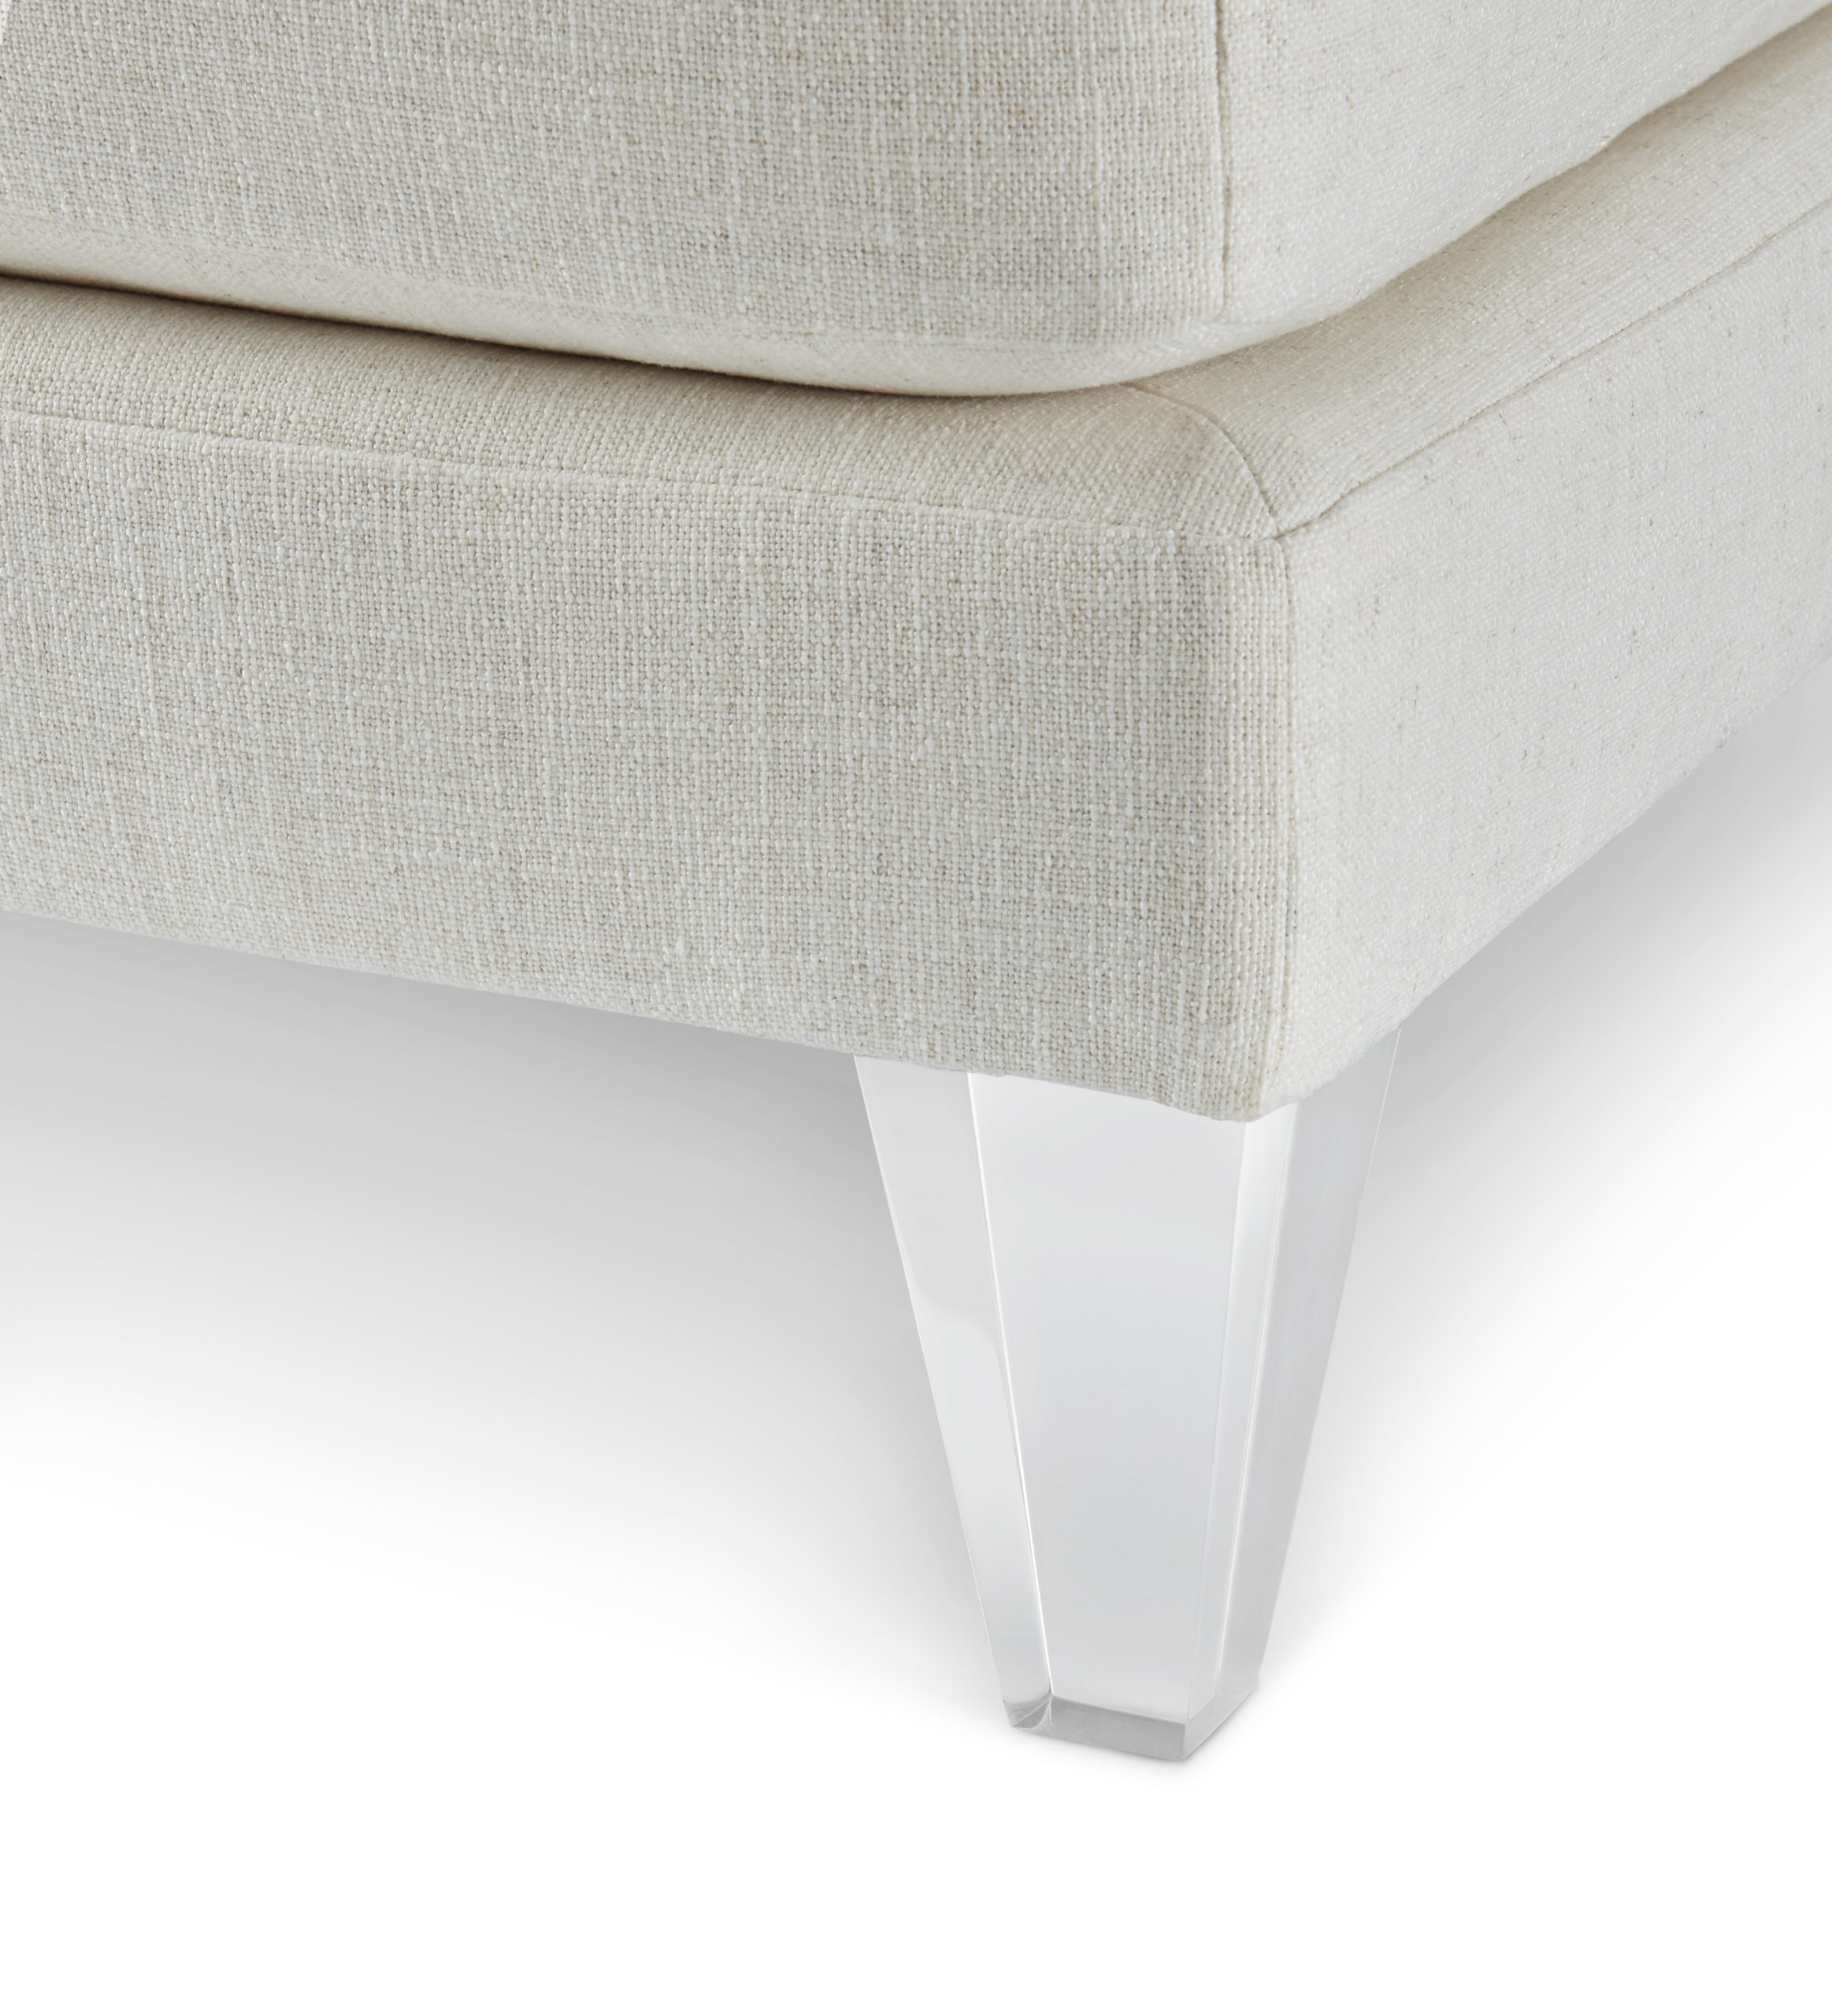 Baker_products_WNWN_taylor_ottoman_BAU3102o_DETAIL-scaled-1